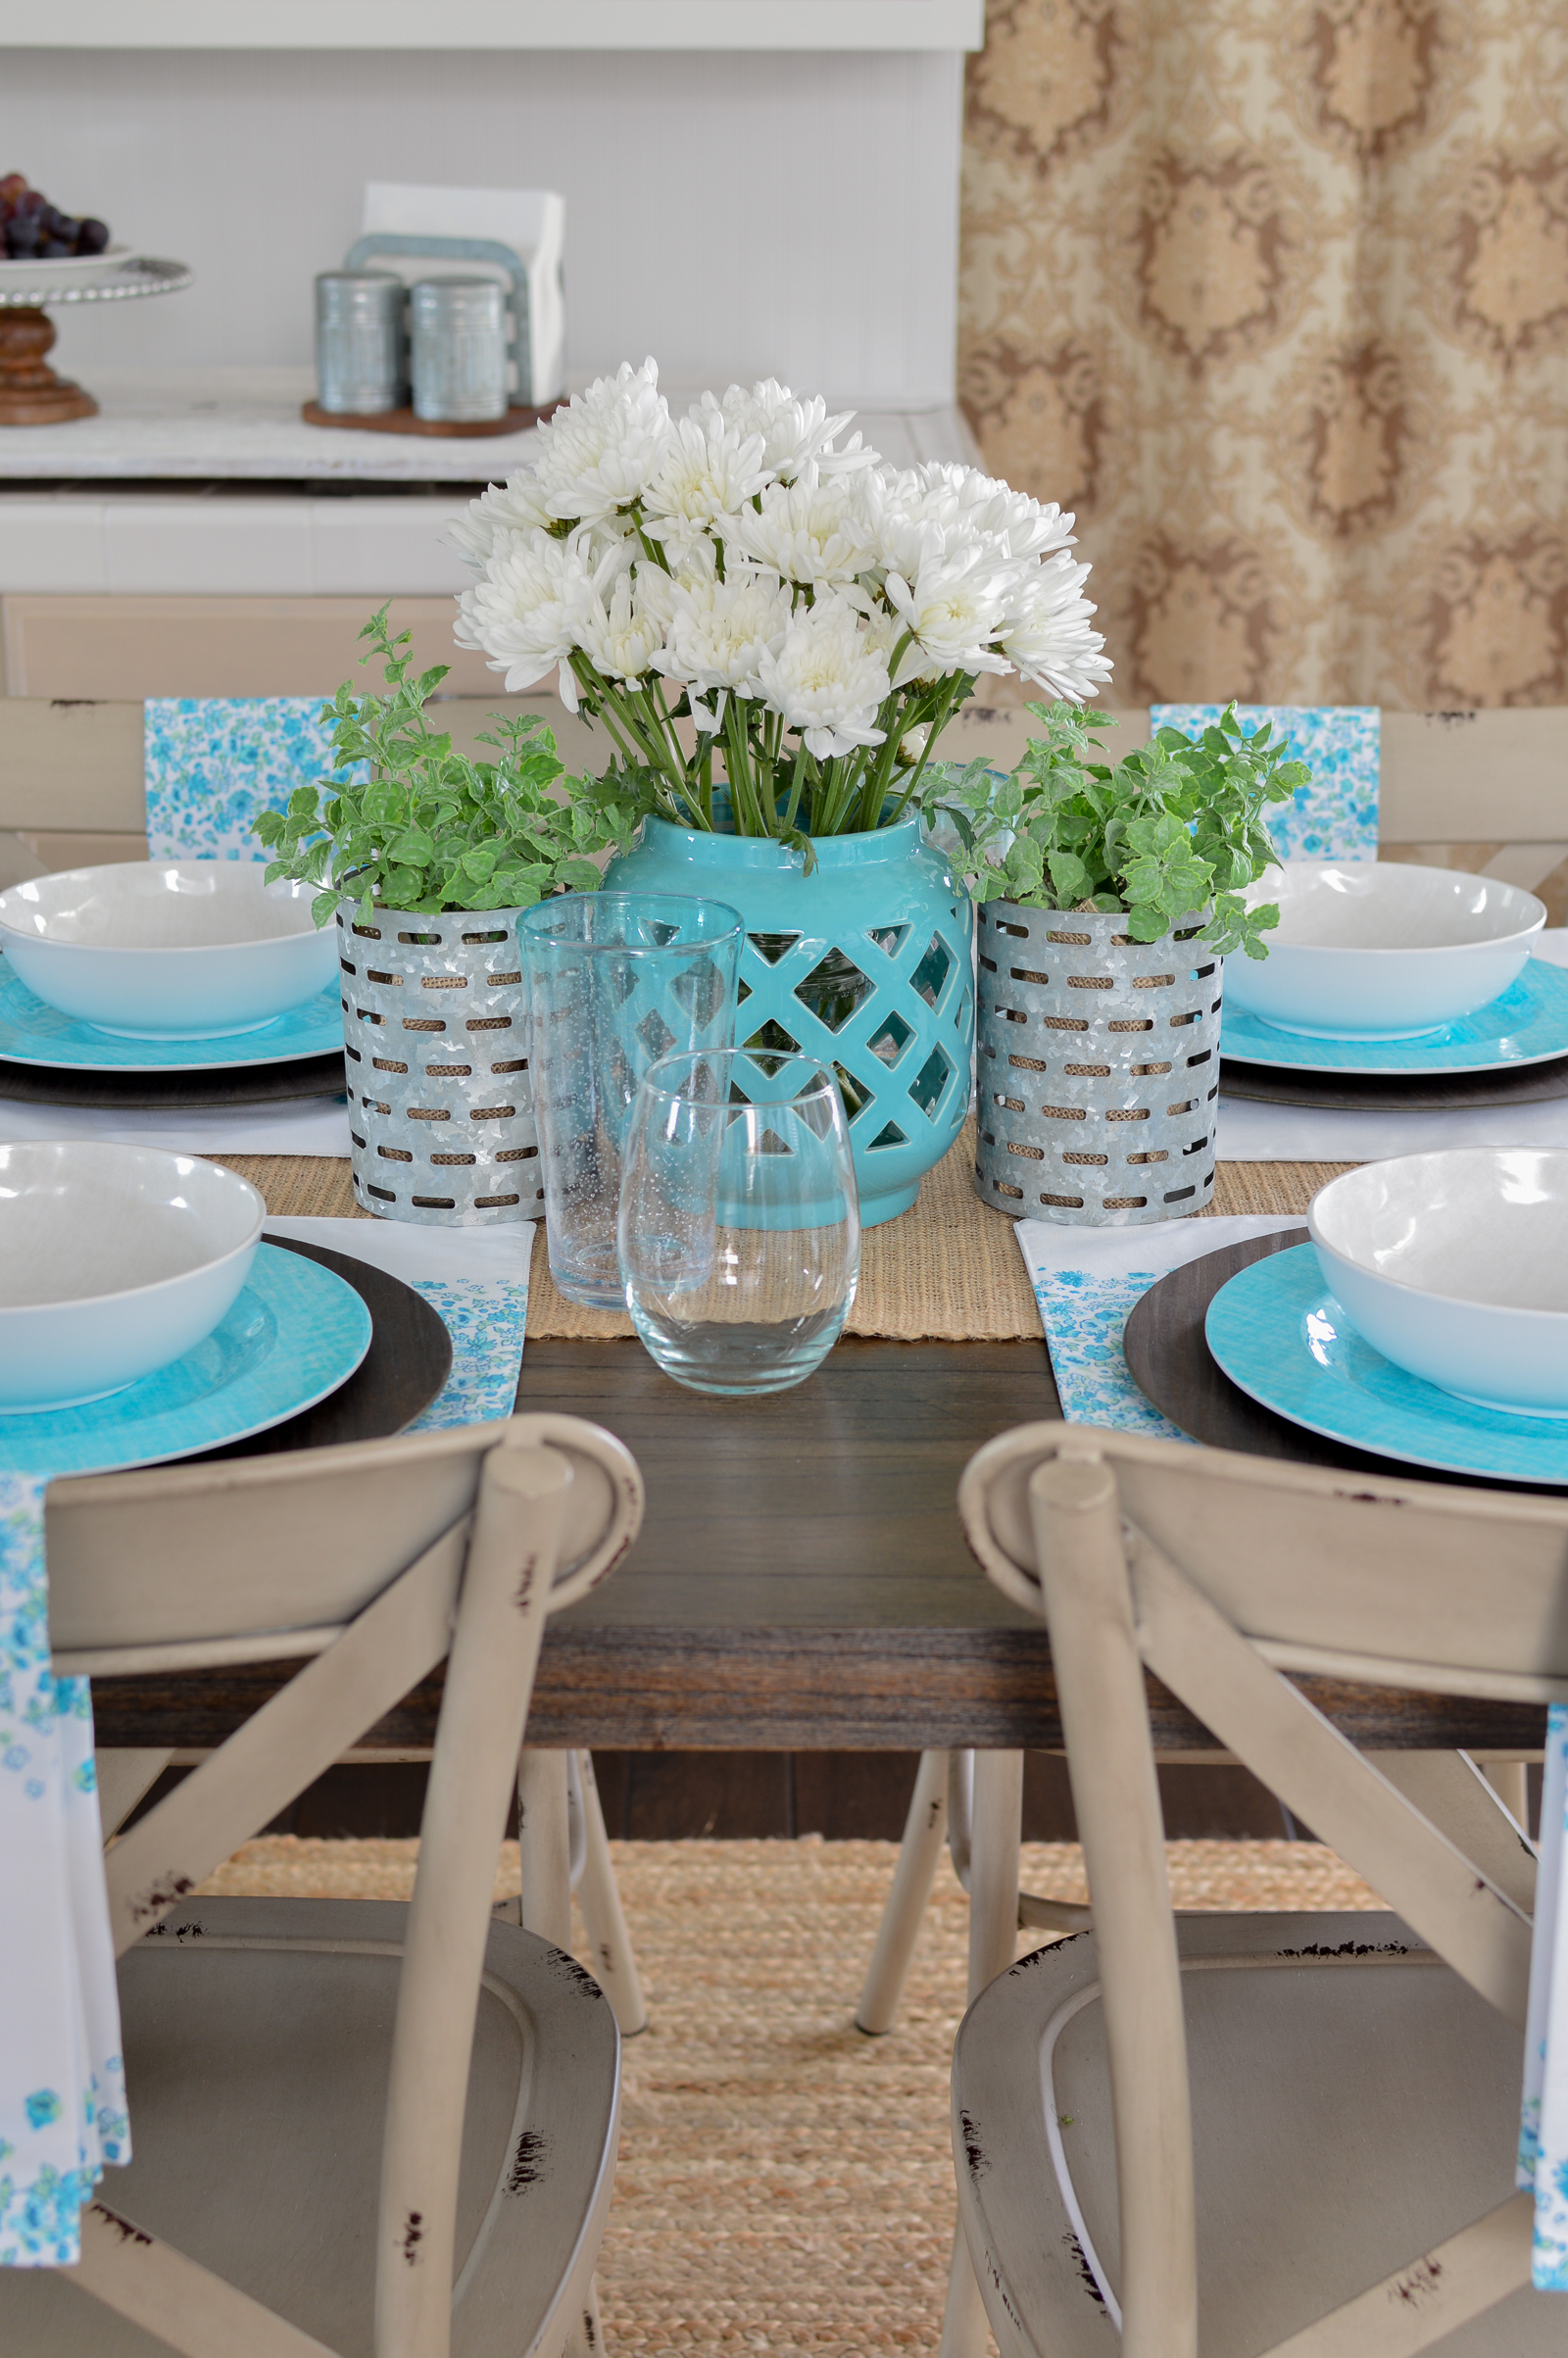 Farmhouse Style Decorating with Color | Easy ideas for adding color to neutral decor, featuring Better Homes & Gardens good, found at Walmart! Affordable cottage farm house dining table #sponsored